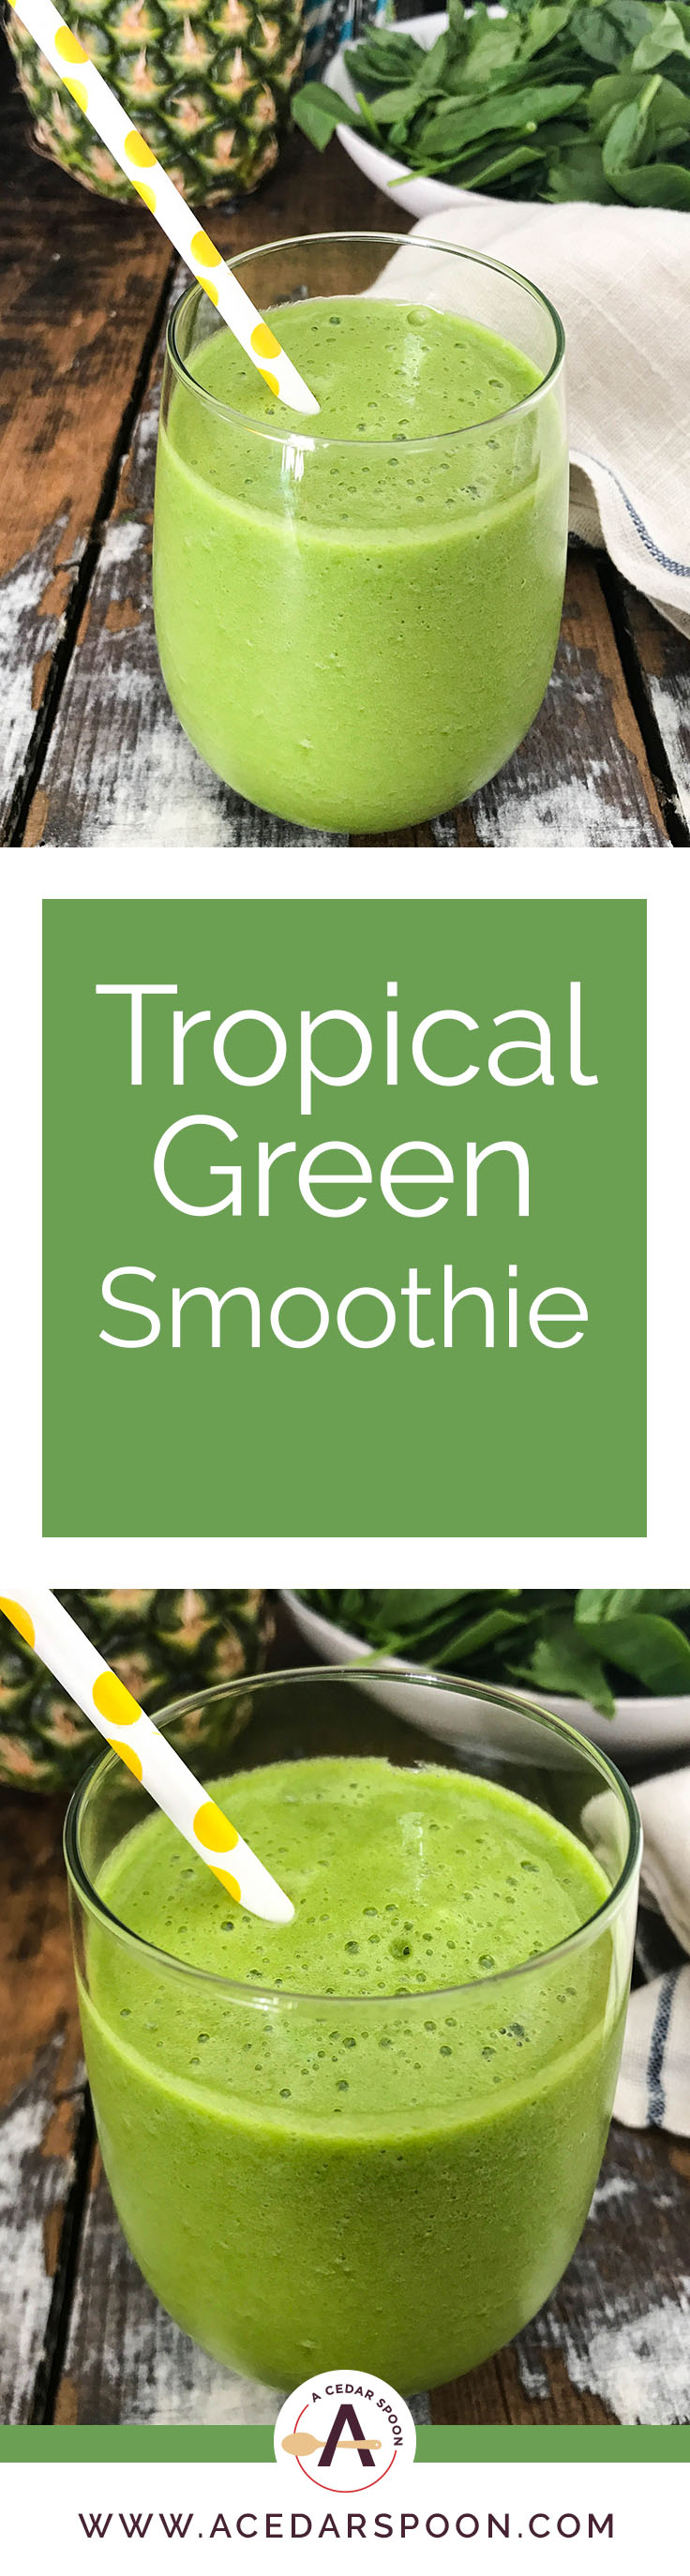 This Tropical Green Smoothie is the perfect summer smoothie mixing a granny smith apple, fresh spinach, mint and frozen pineapple. You will get a good dose of your fruits and vegetables, while feeling refreshed on a hot summer day.